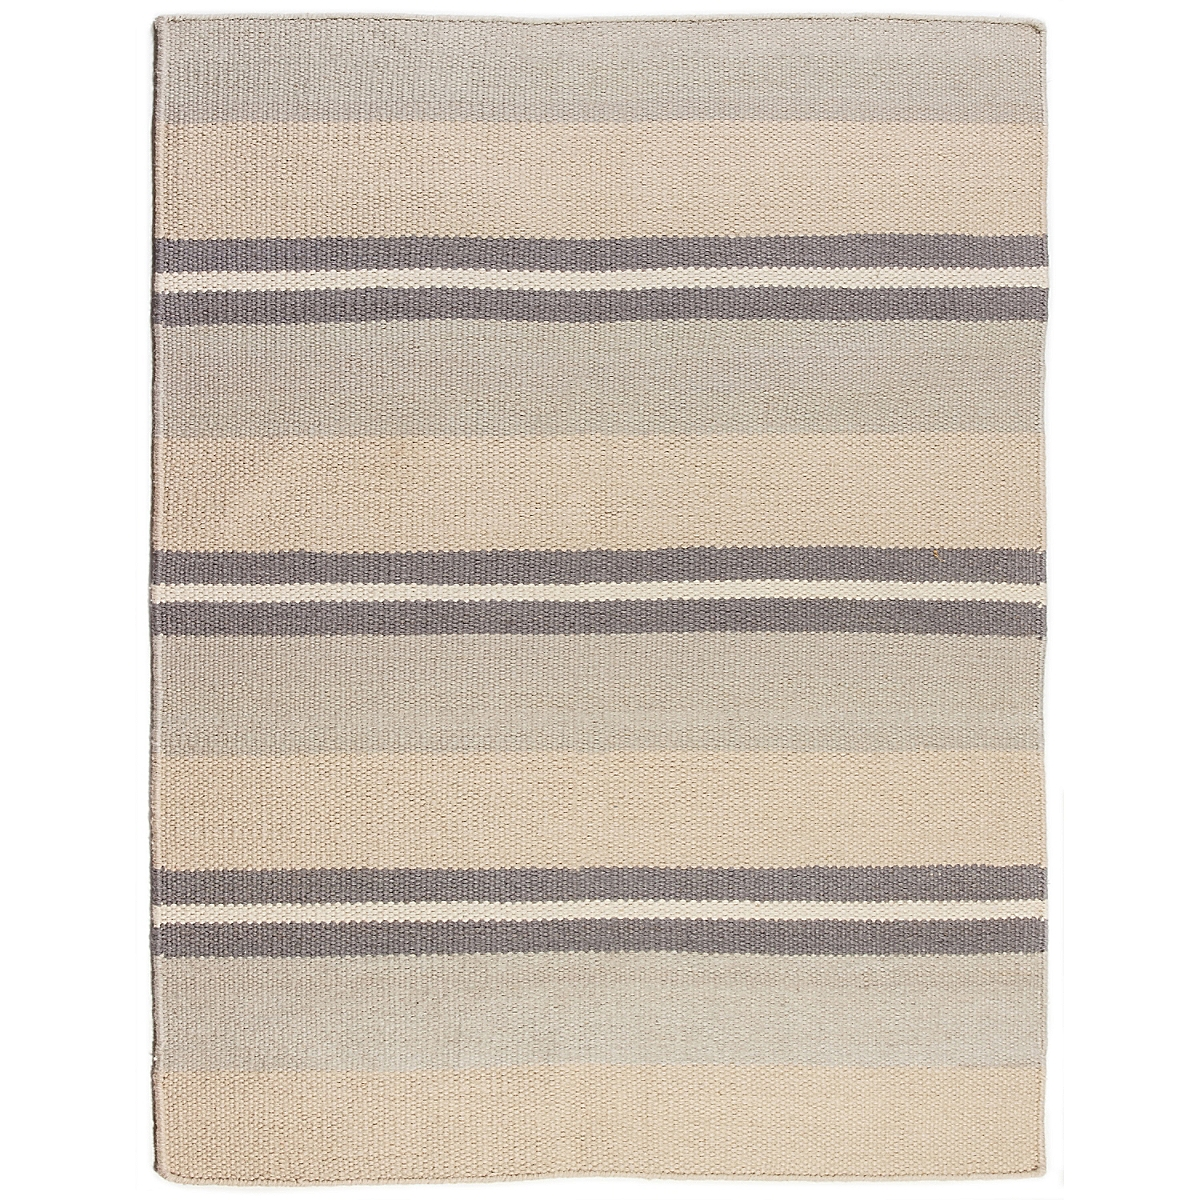 Fenwick Island Wool Berber Striped Rug